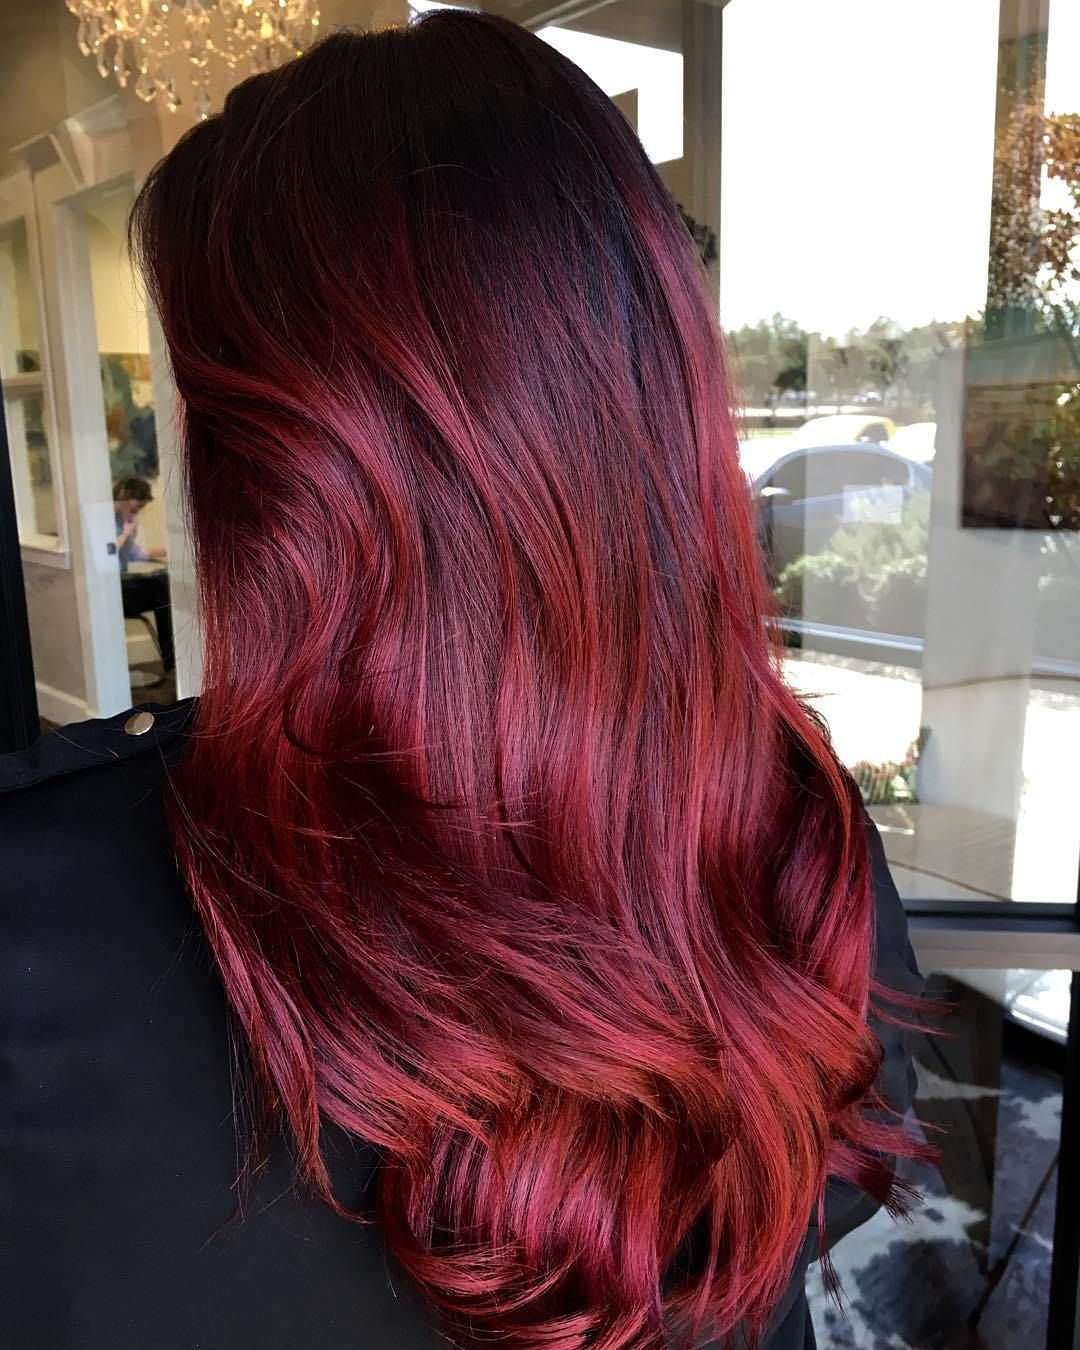 45 Shades Of Burgundy Hair Dark Burgundy Maroon Burgundy With Red Purple And Brown Highlights Hair Color Burgundy Burgundy Hair Burgundy Balayage